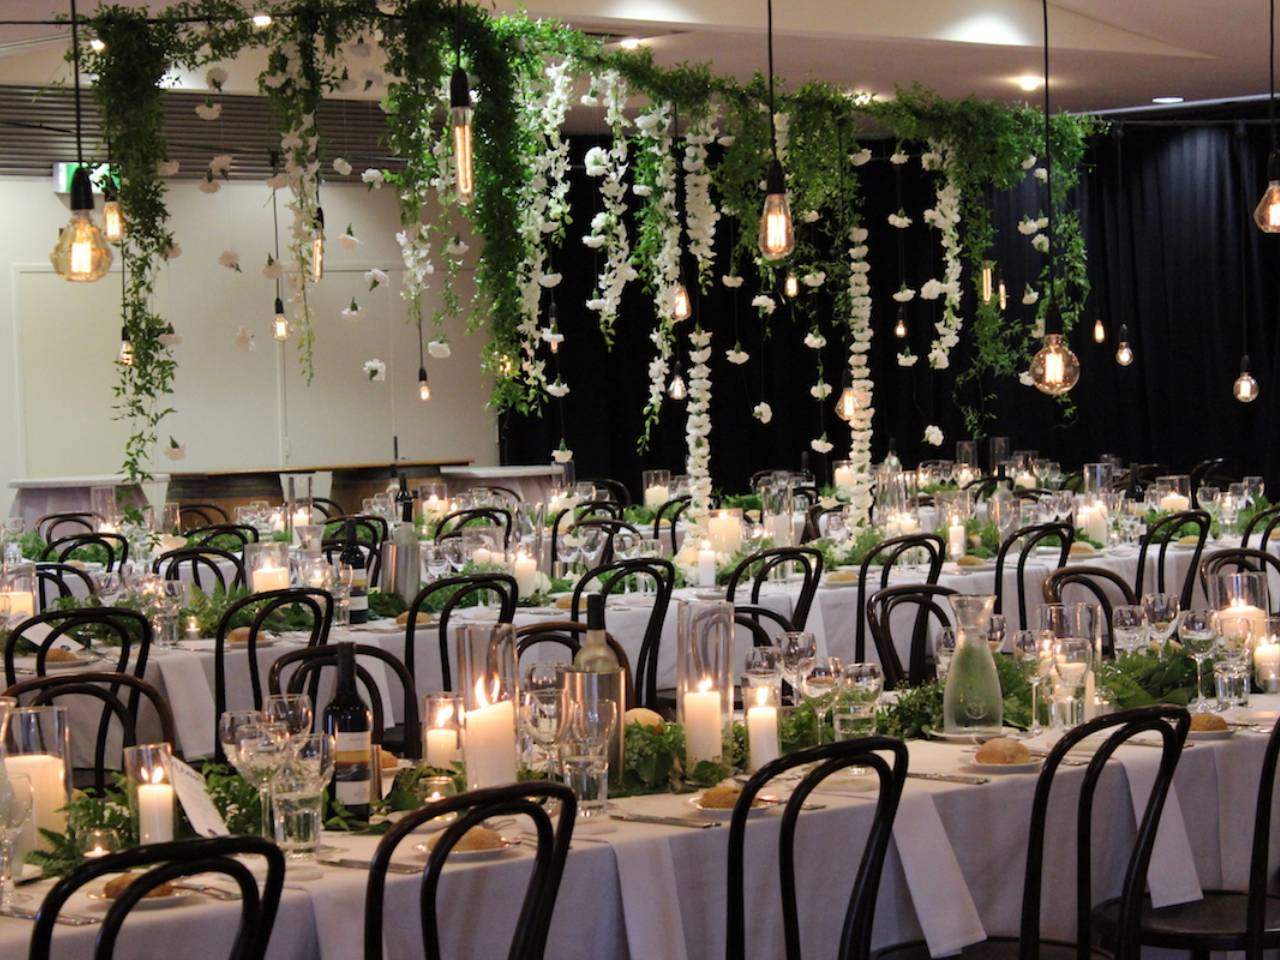 Long Tables Set Up With Candles And Table Decorations For An Event